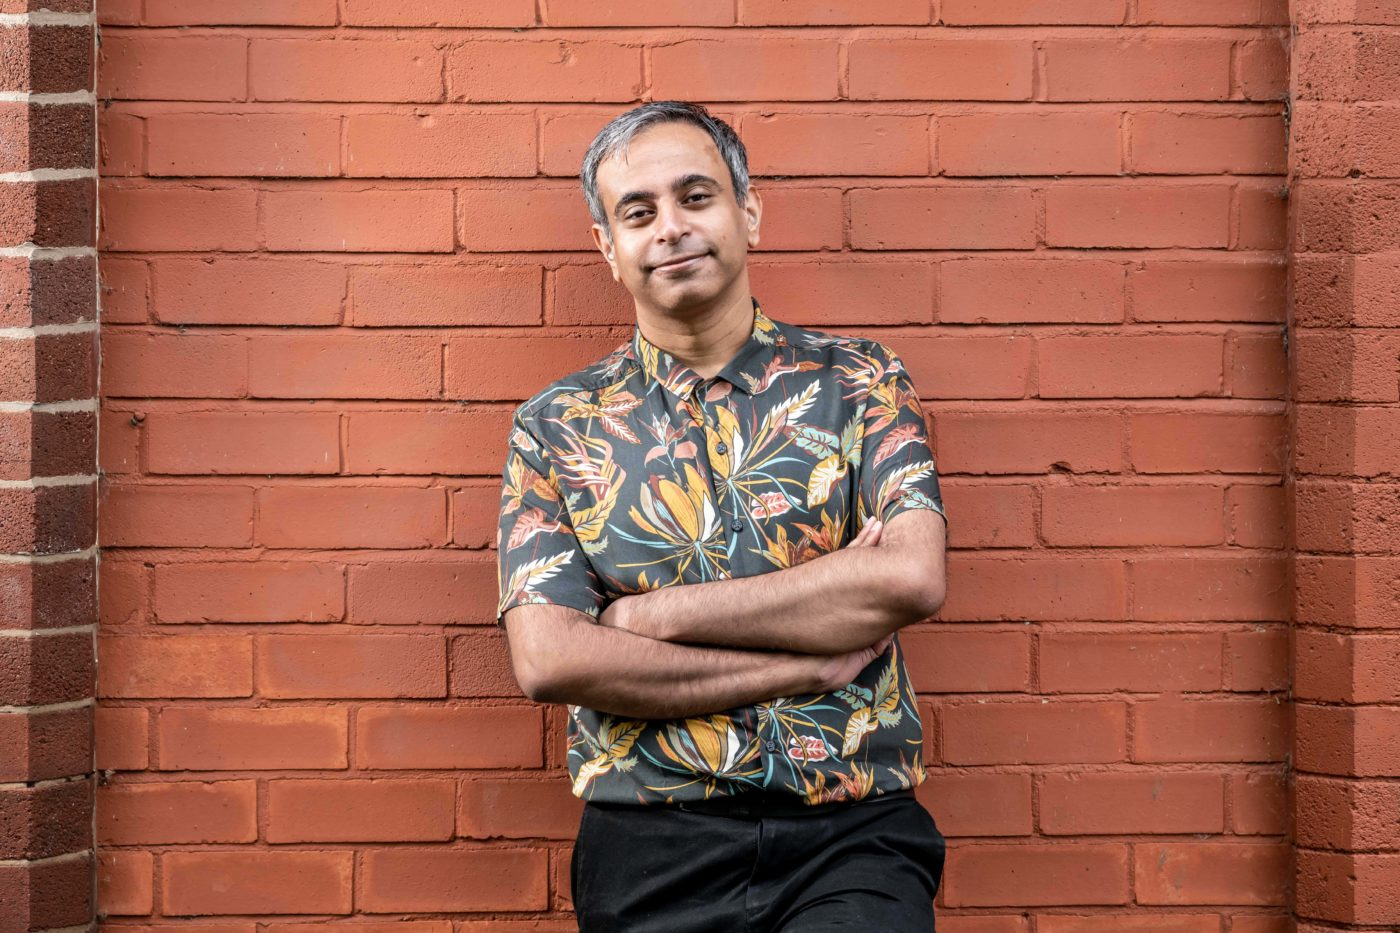 Shahid Iqbal Khan stands with arms crossed, leaning against a brick wall and wearing a floral print shirt. He is smiling gently.